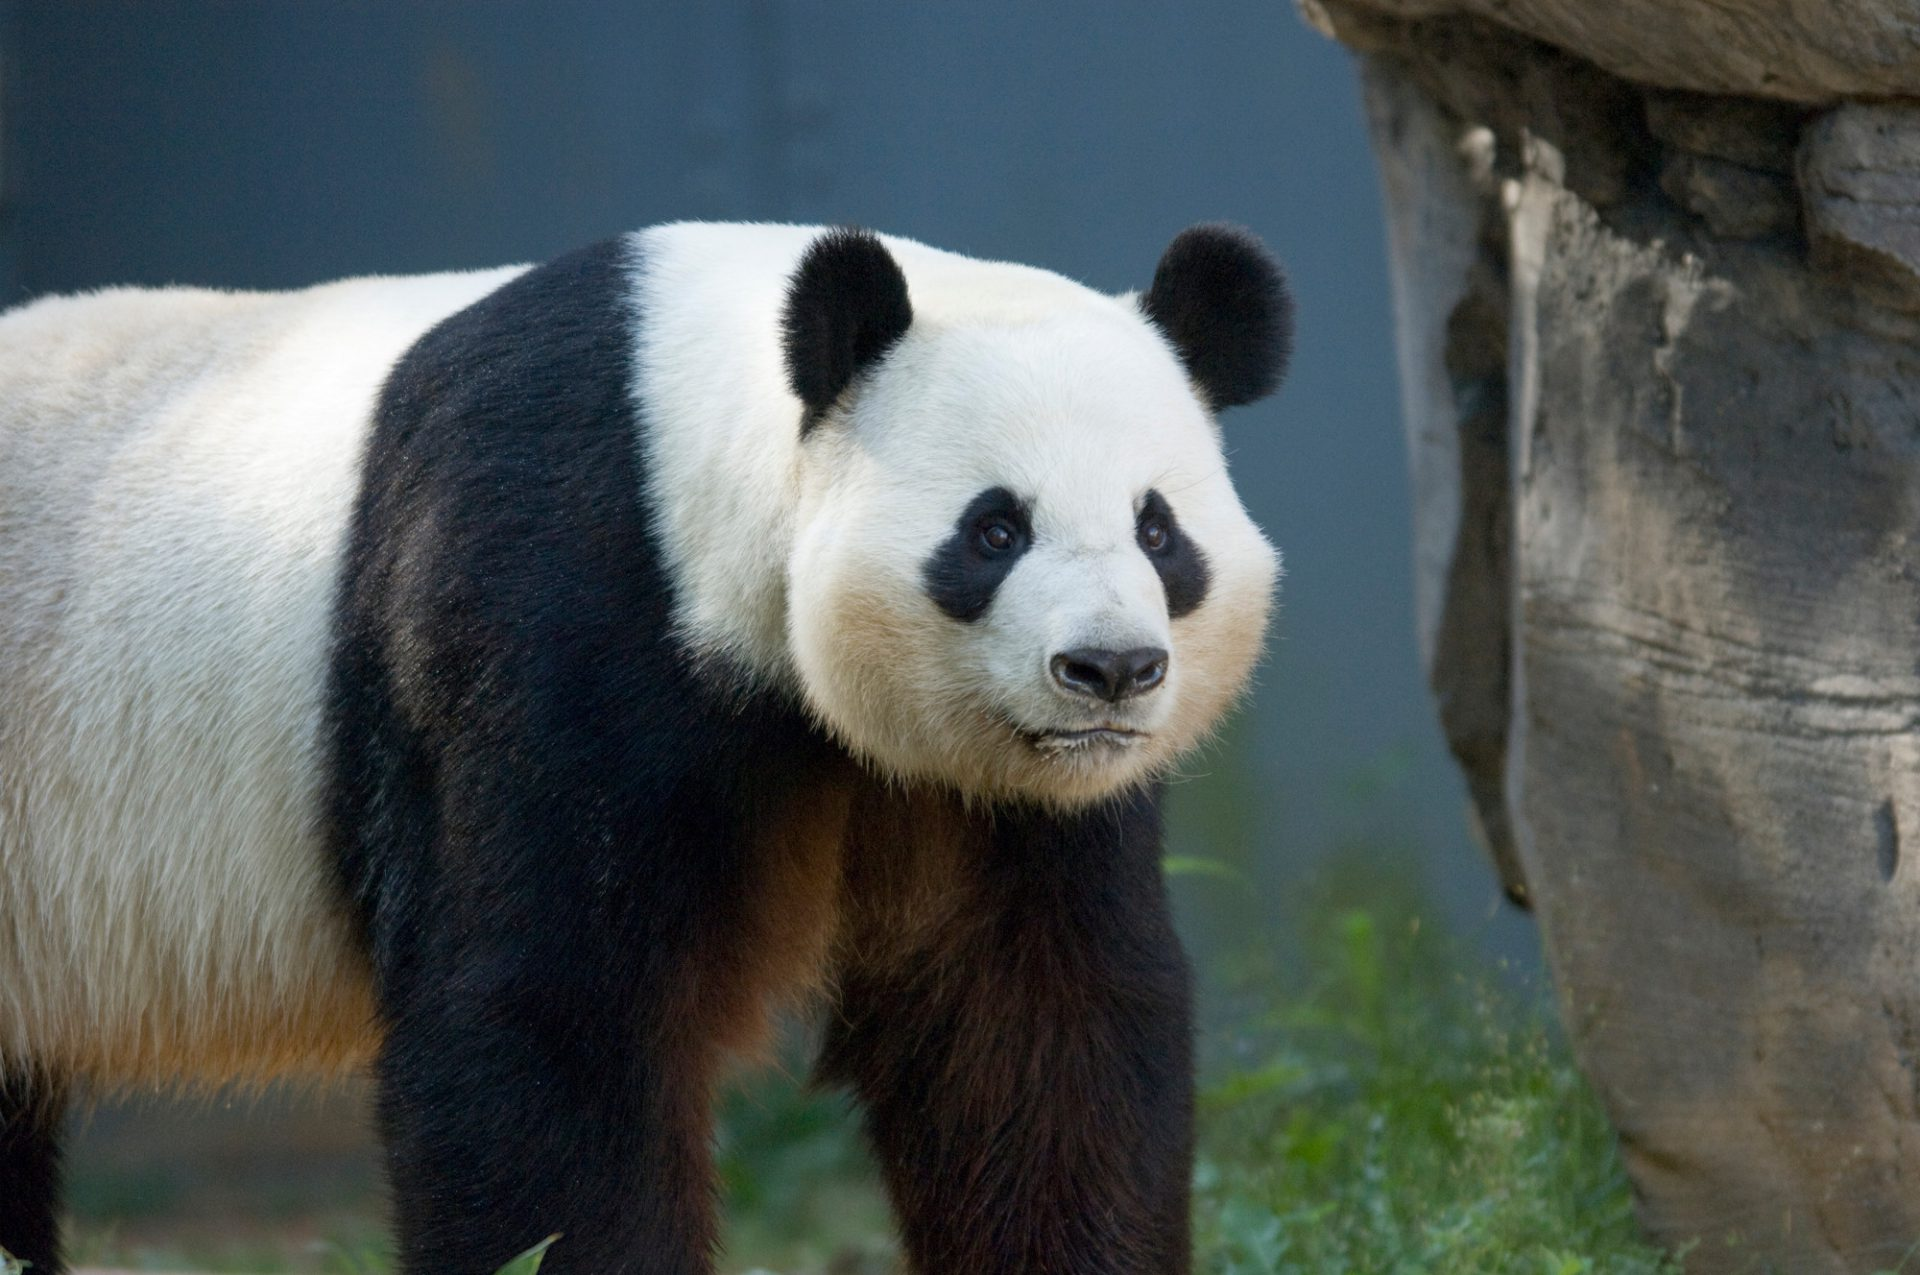 Photo: A giant panda at Zoo Atlanta.